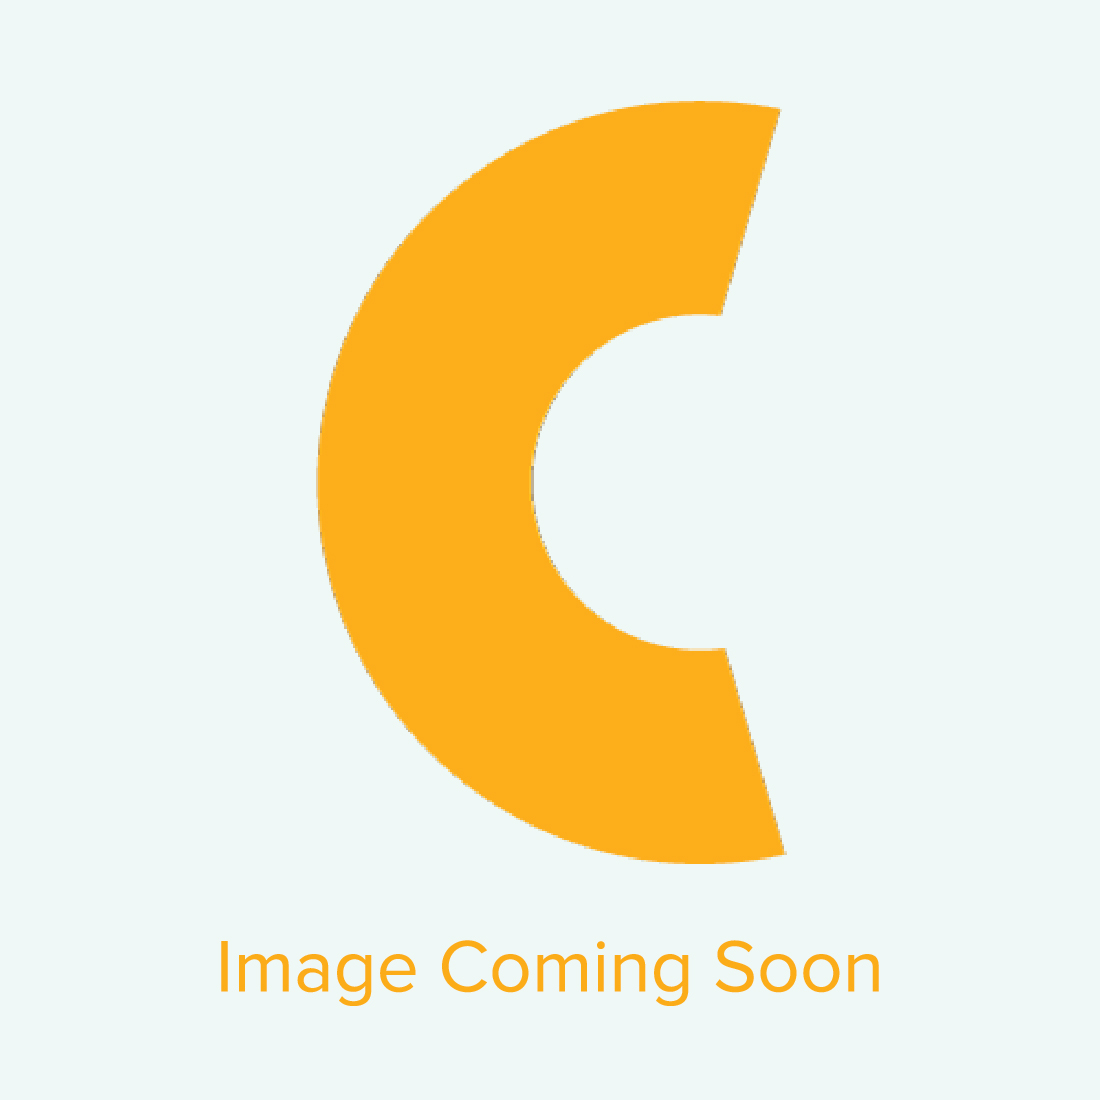 Frosted Glass Sublimation Beer Stein - 16oz. - available in 2ct. or 24ct. case